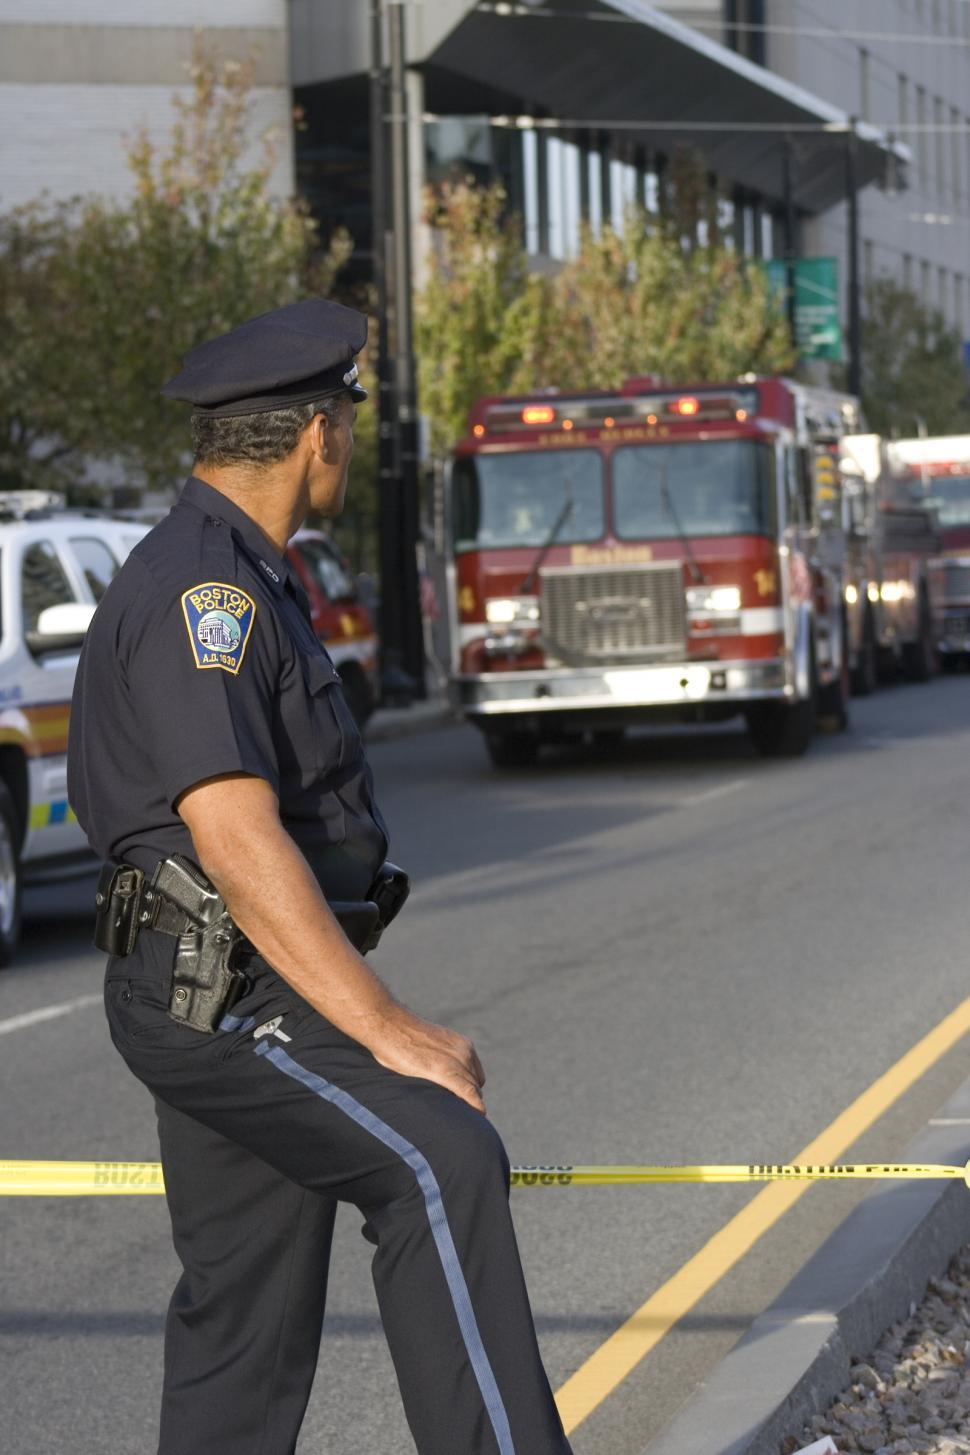 Download Free Stock HD Photo of Policeman and Firetruck Online